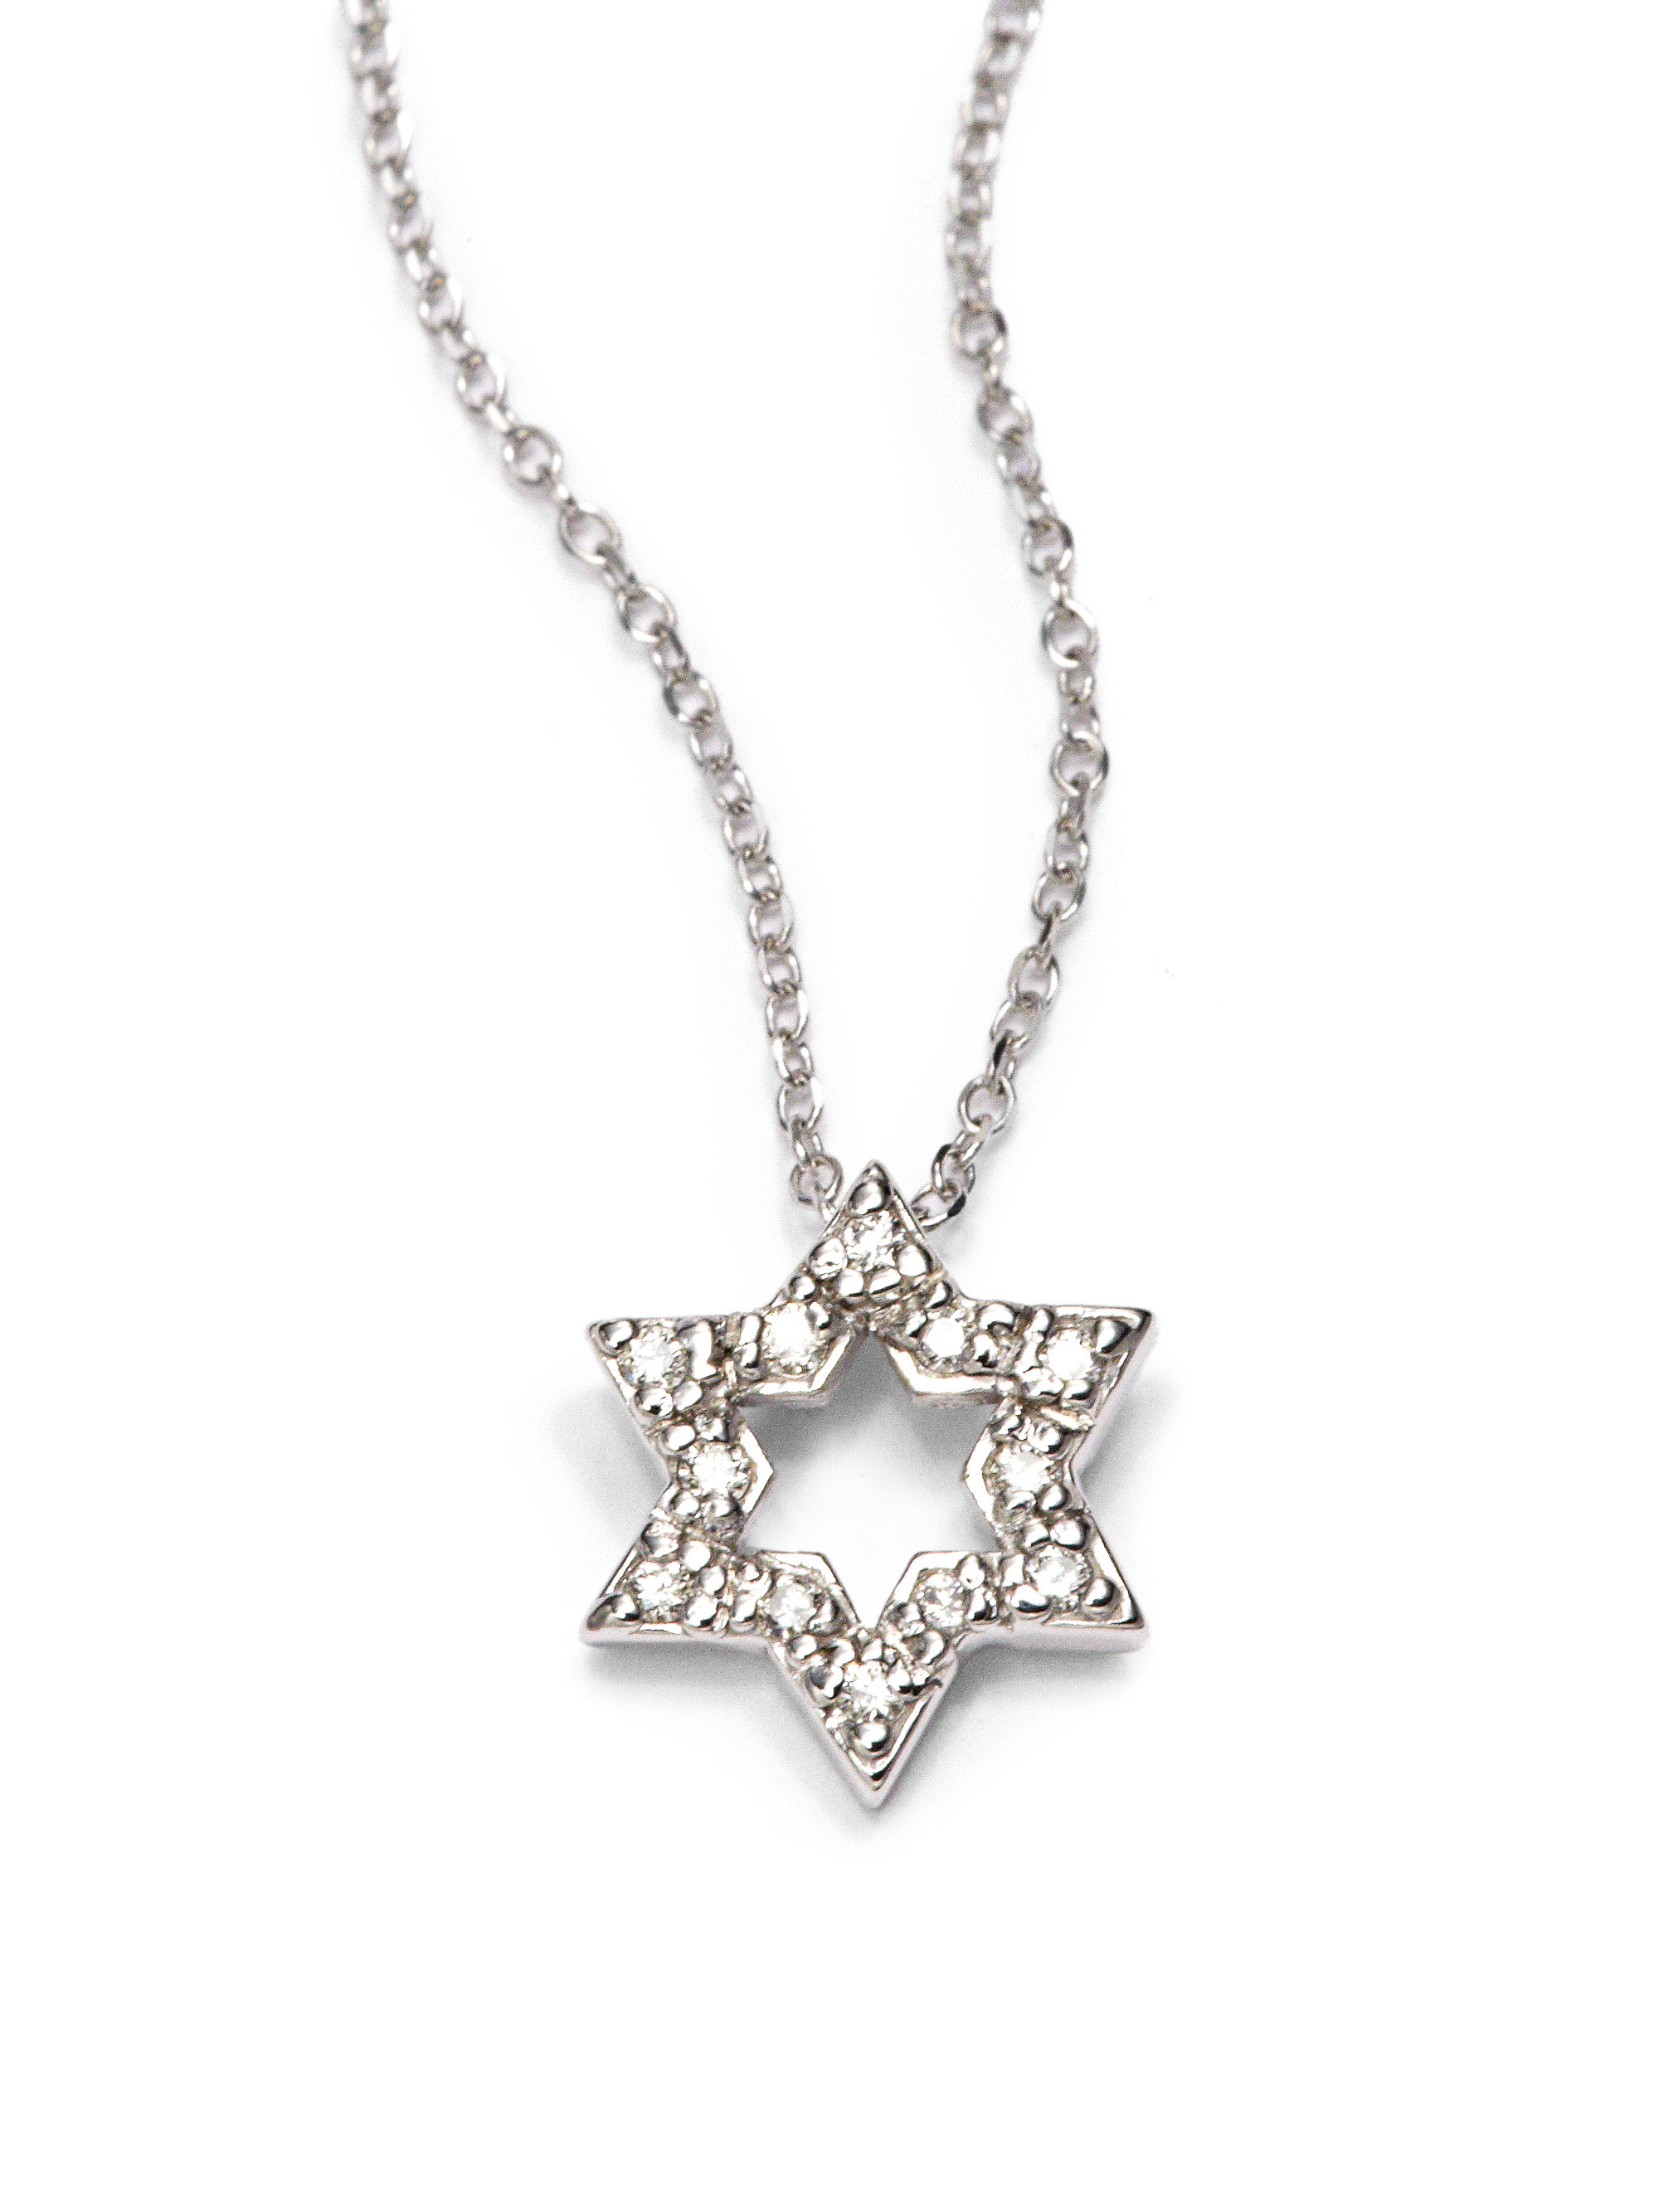 Kc designs Diamond Star David Pendant Necklace in Metallic